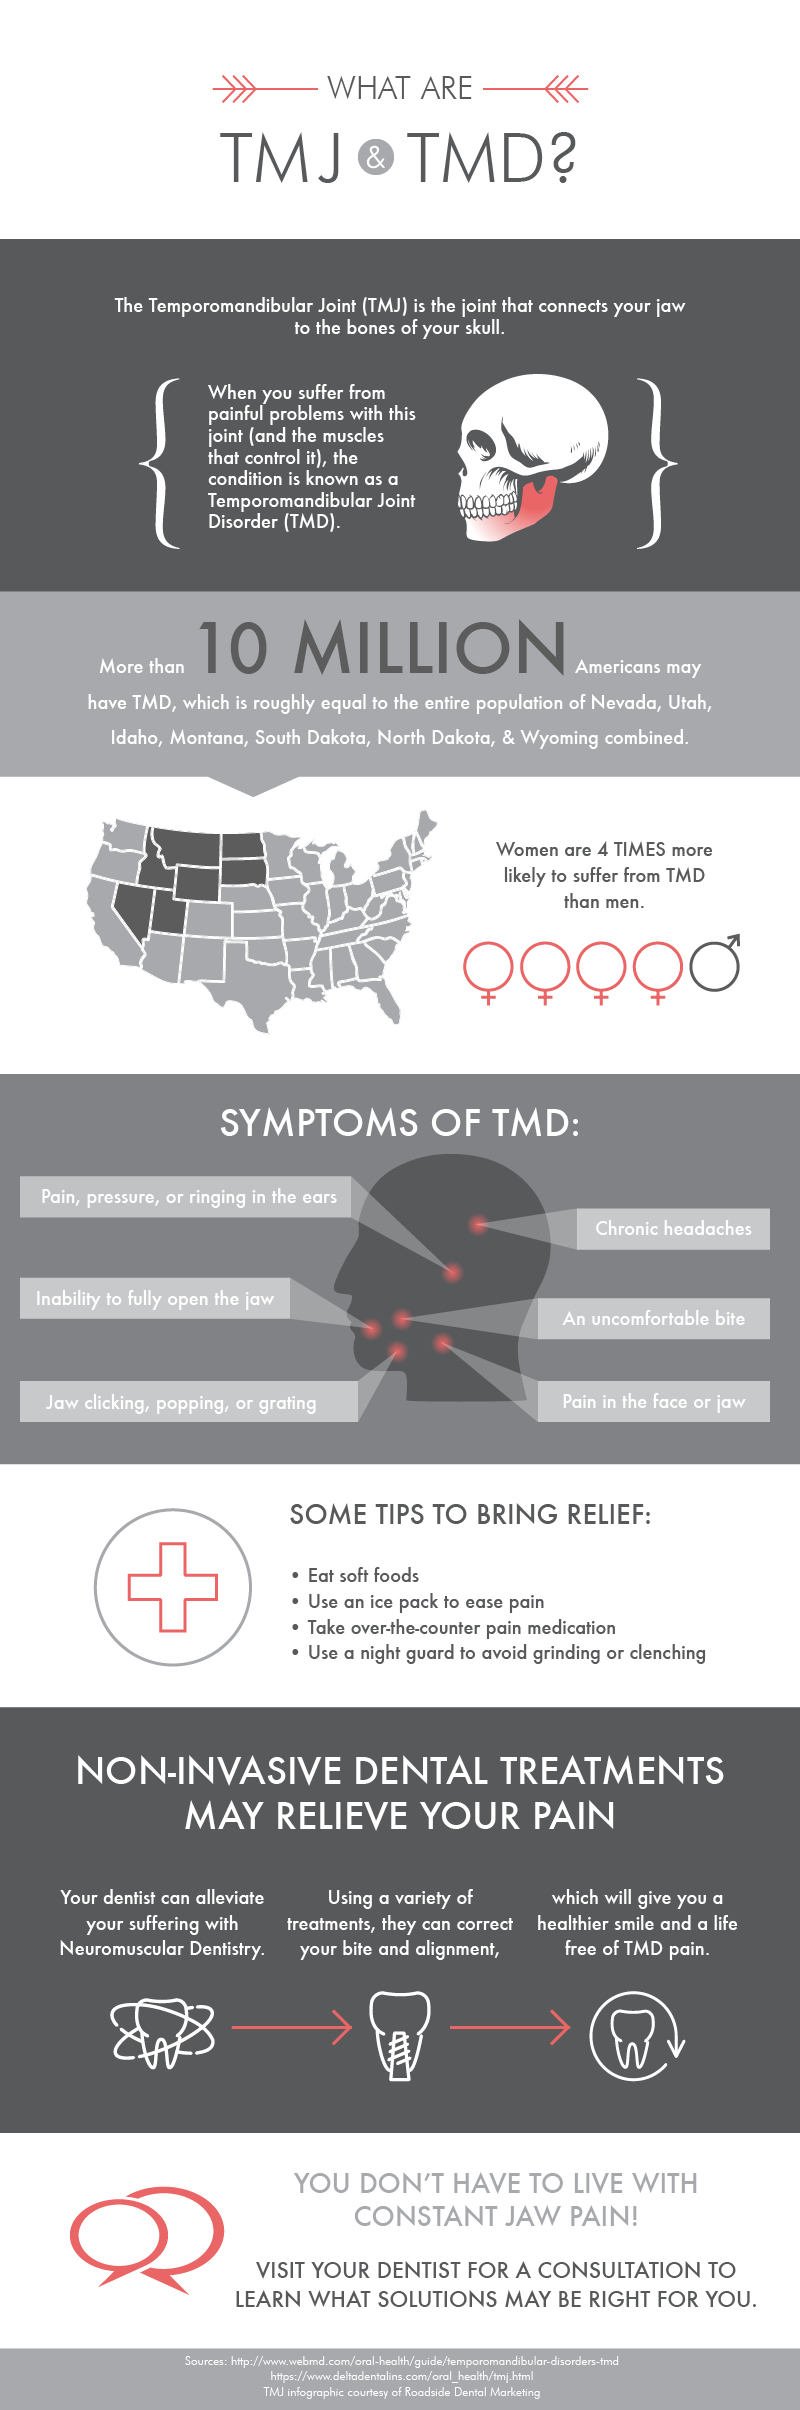 Find relief for frequent headaches with TMD treatment